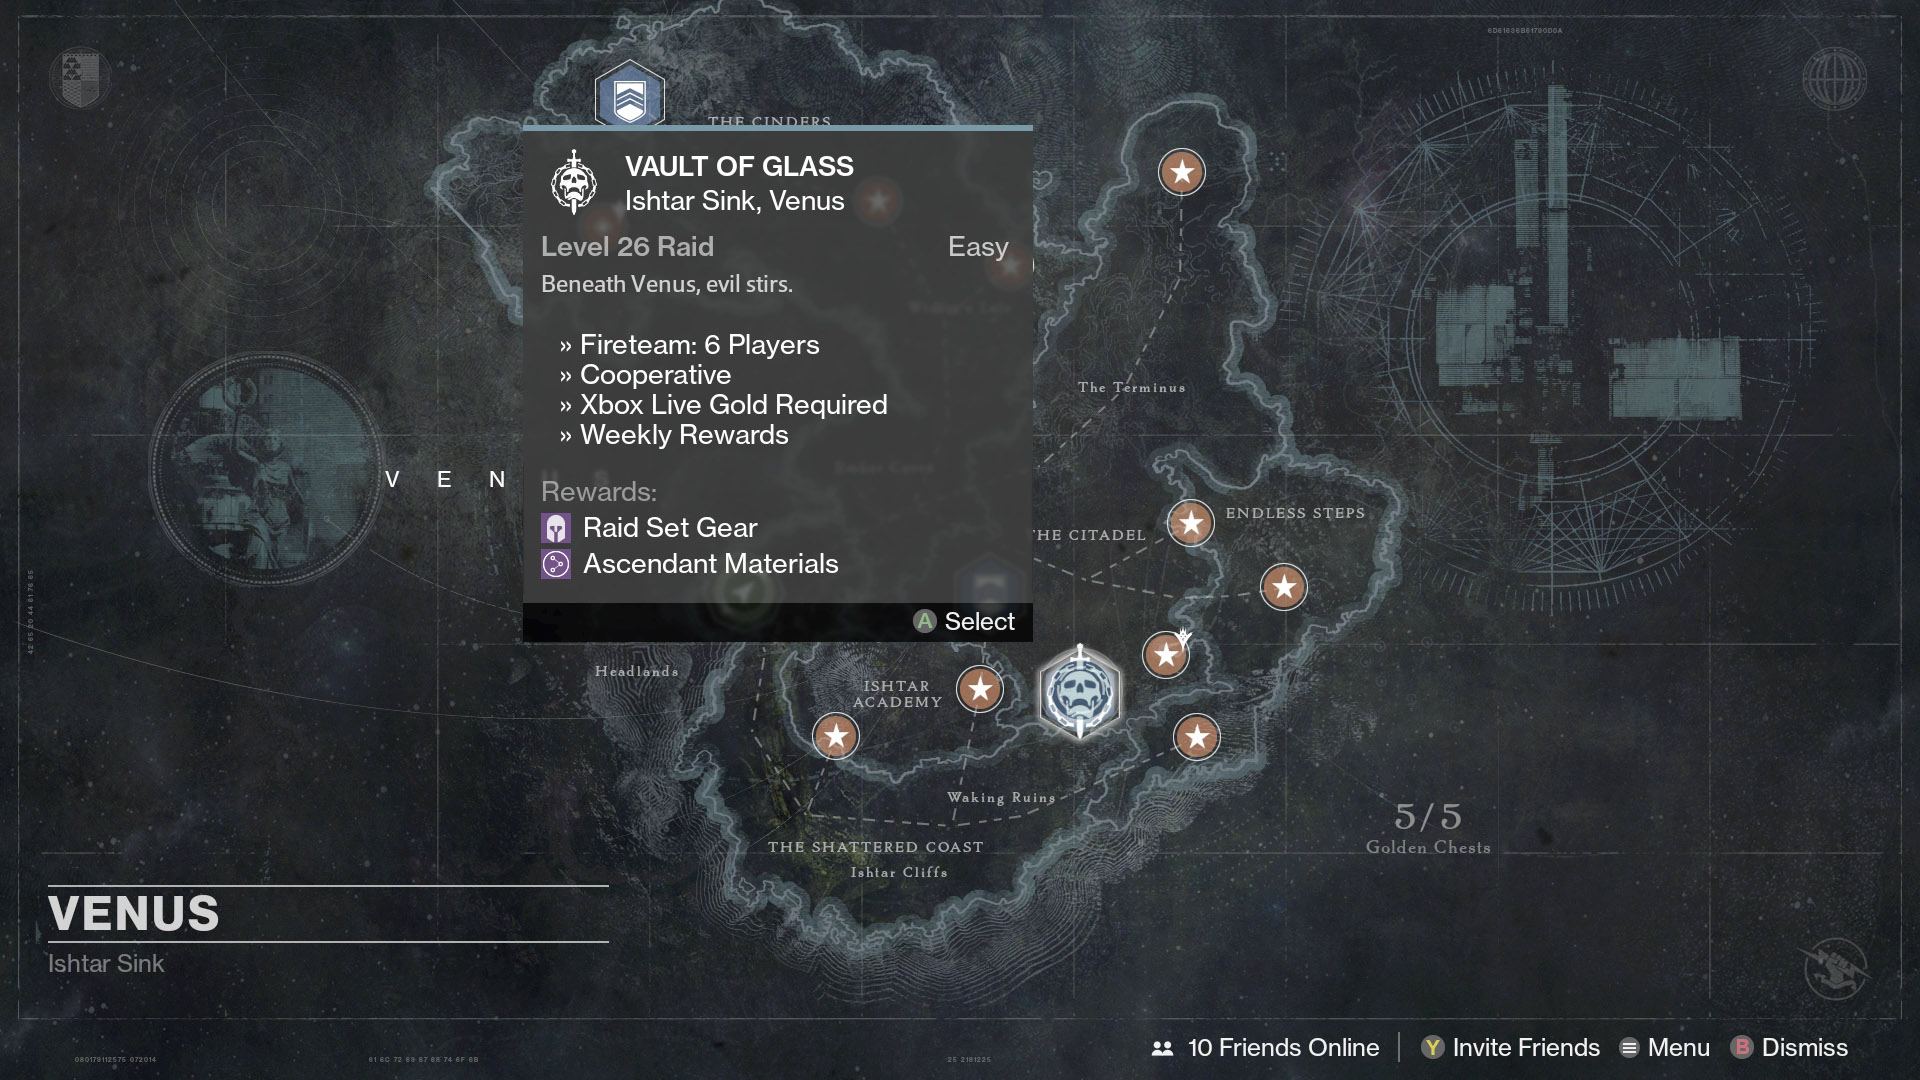 Destiny Vault of Glass